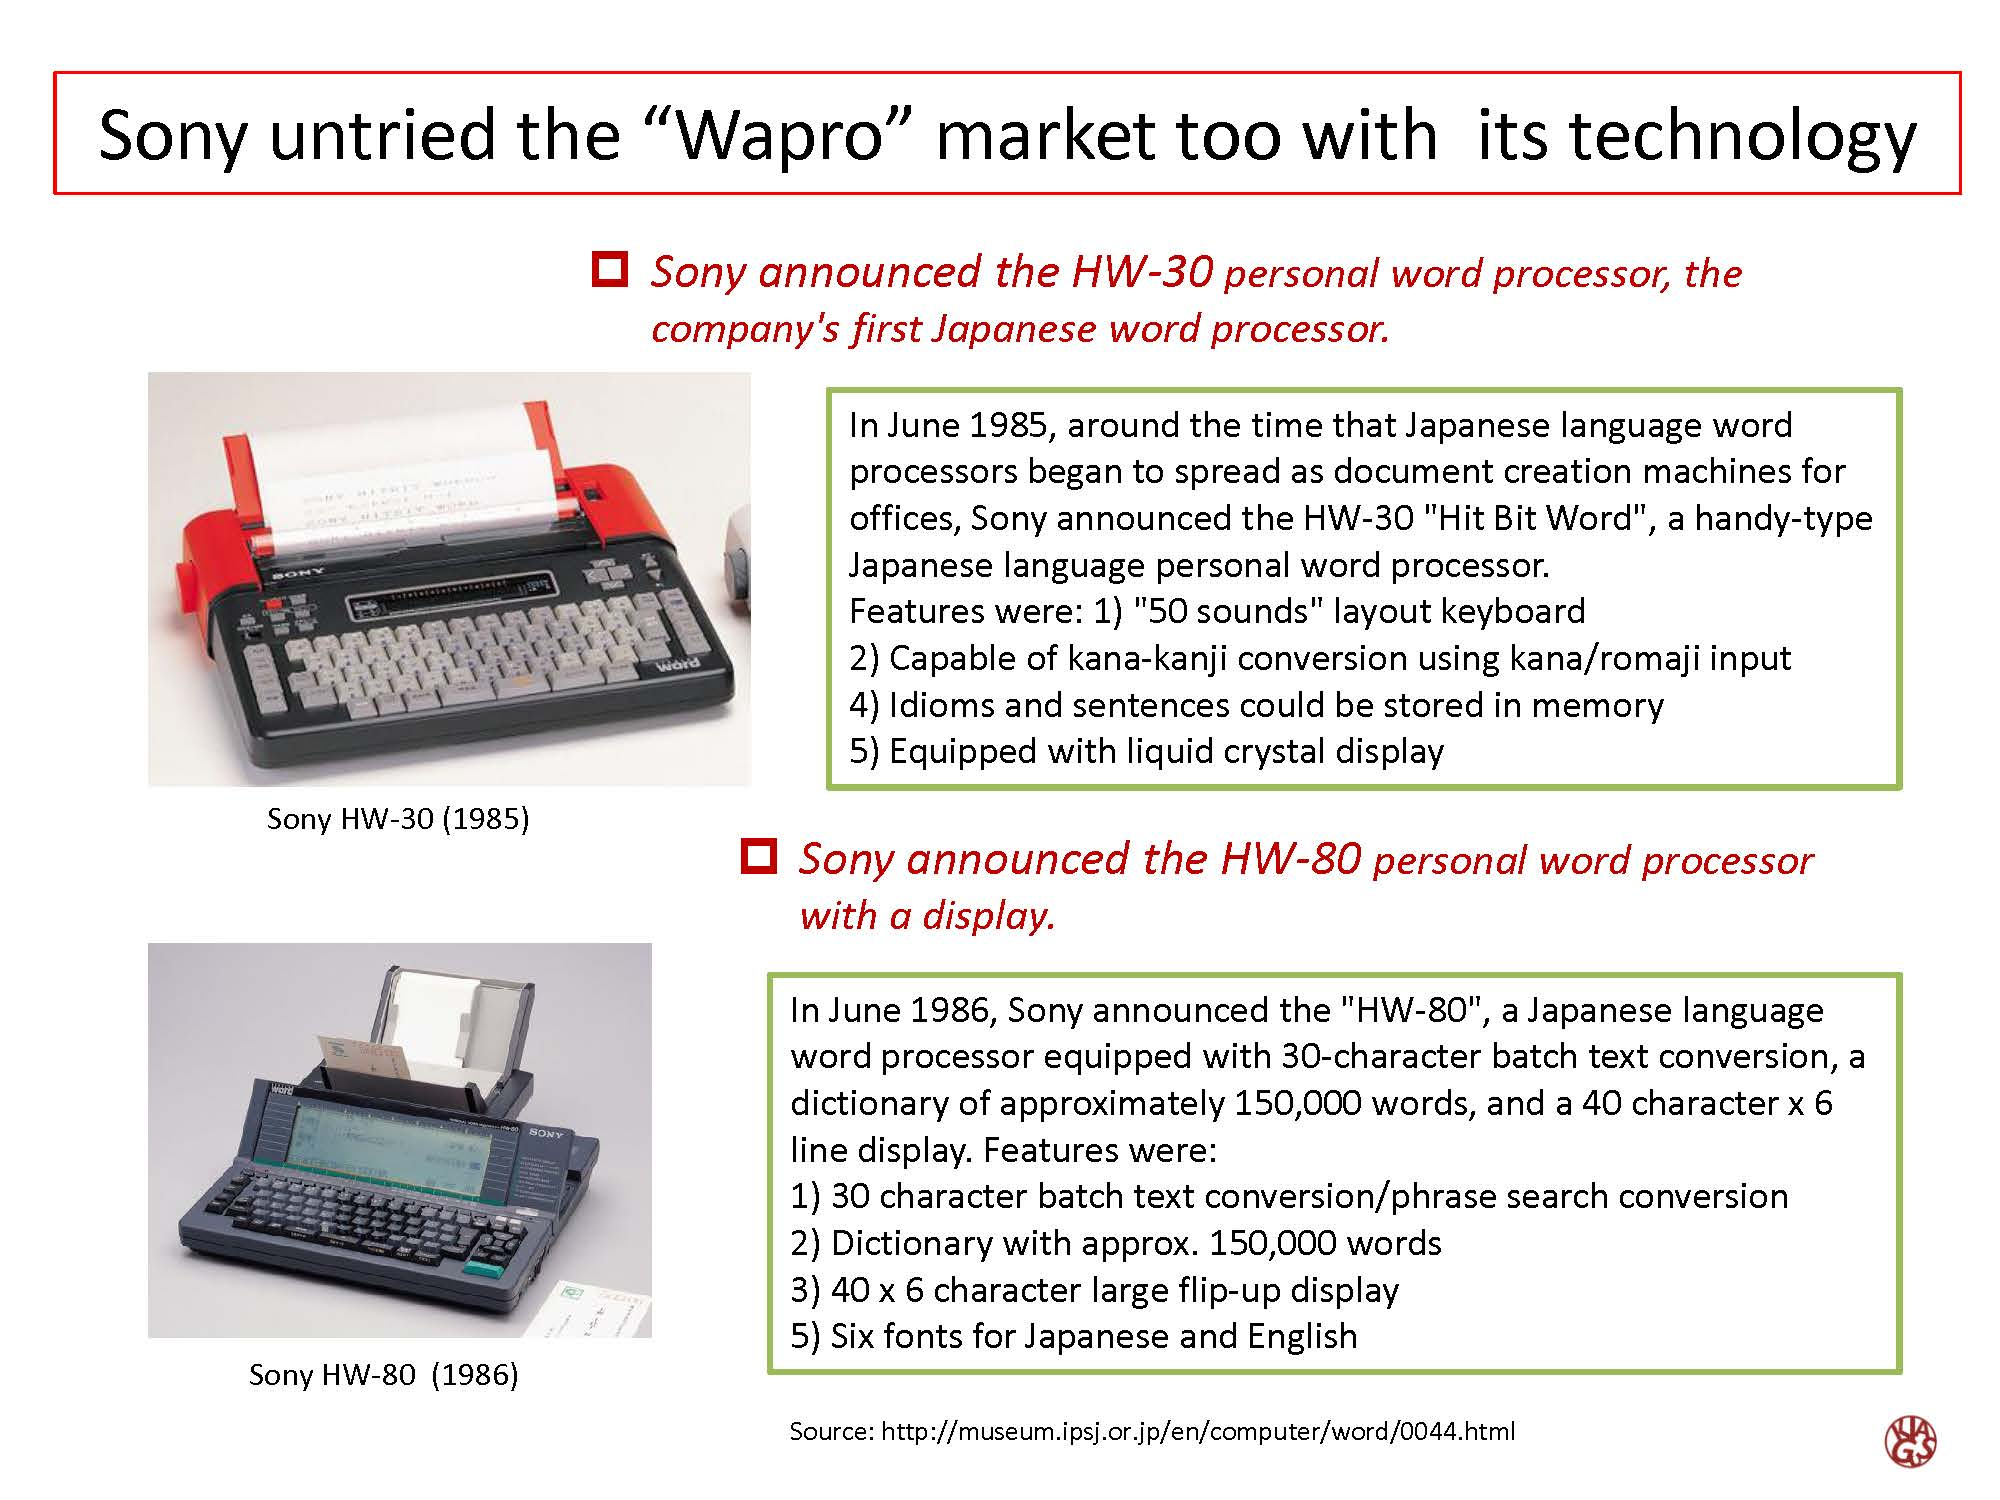 Development of japanese unique word processers asia japan techno sony untried the wapro market too with its technology nvjuhfo Images